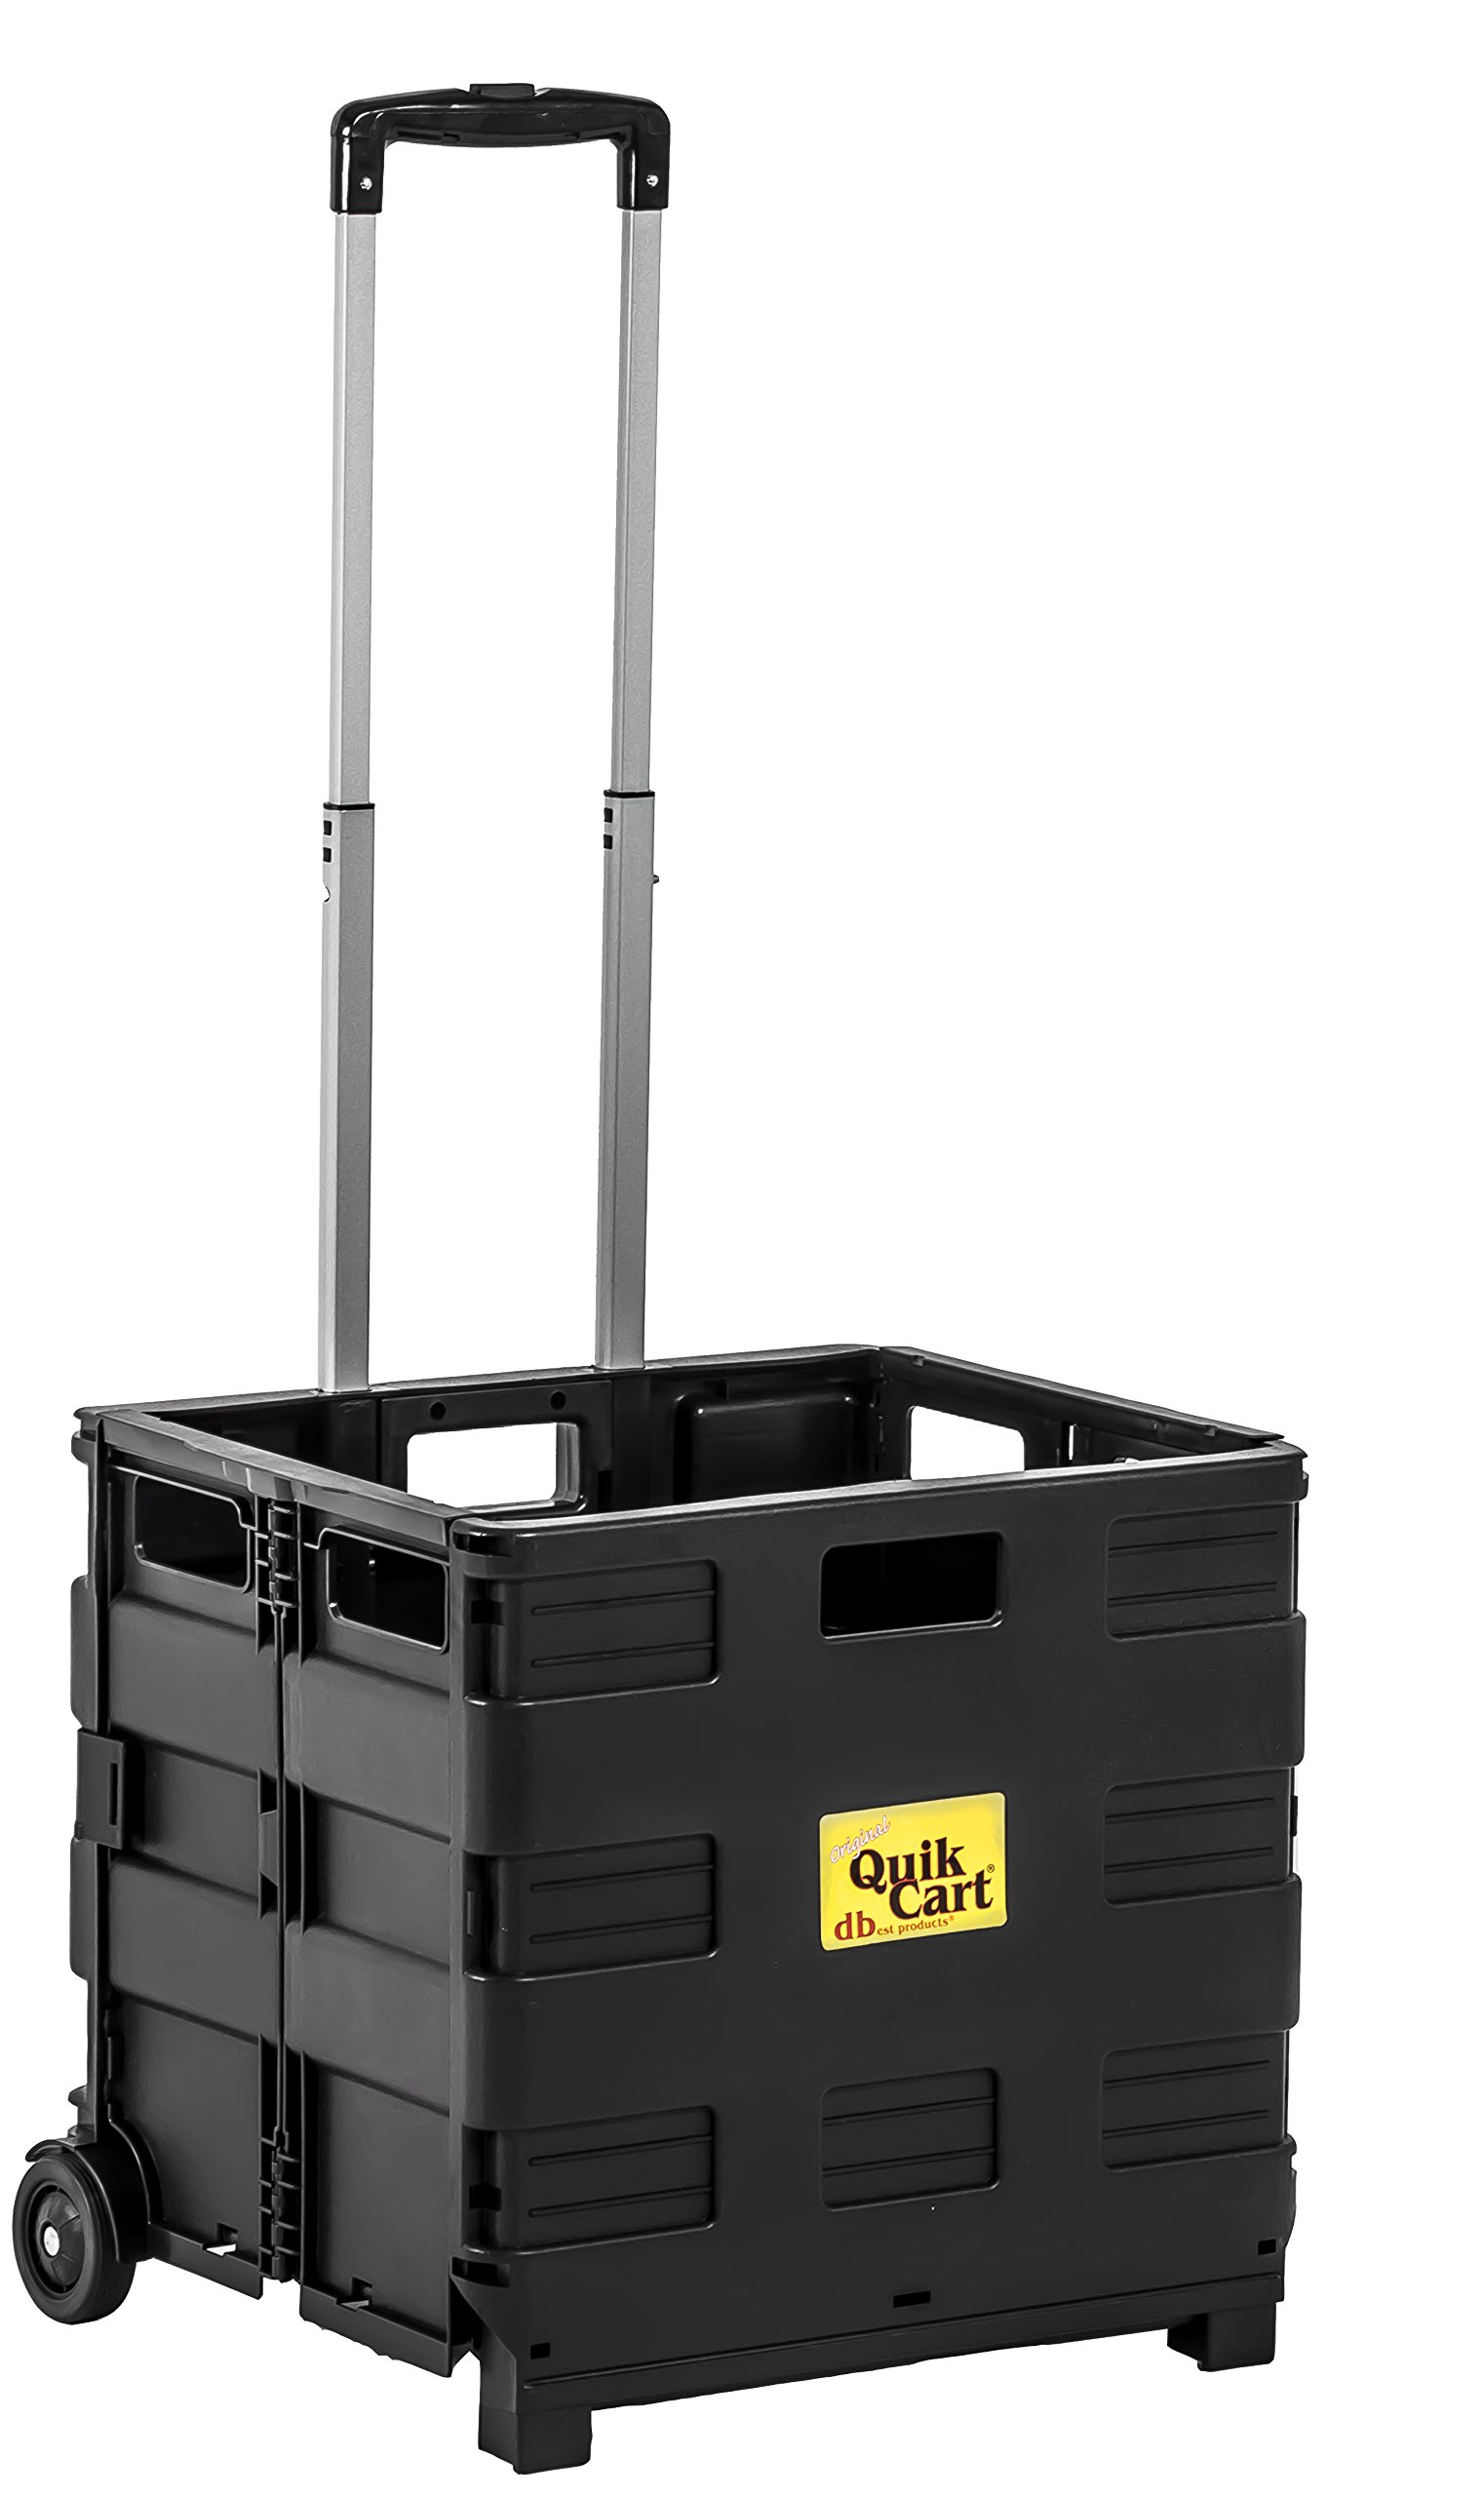 dbest products 01-768 Lightweight Shopping Laundry Travel Portable Mobile Storage Quik Topless Two-Wheeled Collapsible Handcart Rolling Utility Cart Heavy Duty, Without Lid, Black